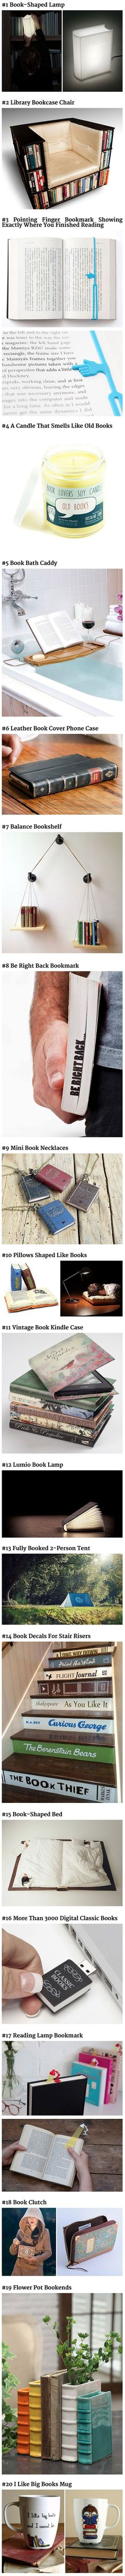 Superhero Bookends and 20 More Cool Items Book Fanatics Would Love I Love Books, Books To Read, My Books, Book Nooks, Book Fandoms, Book Of Life, Cool Items, Book Quotes, Book Memes